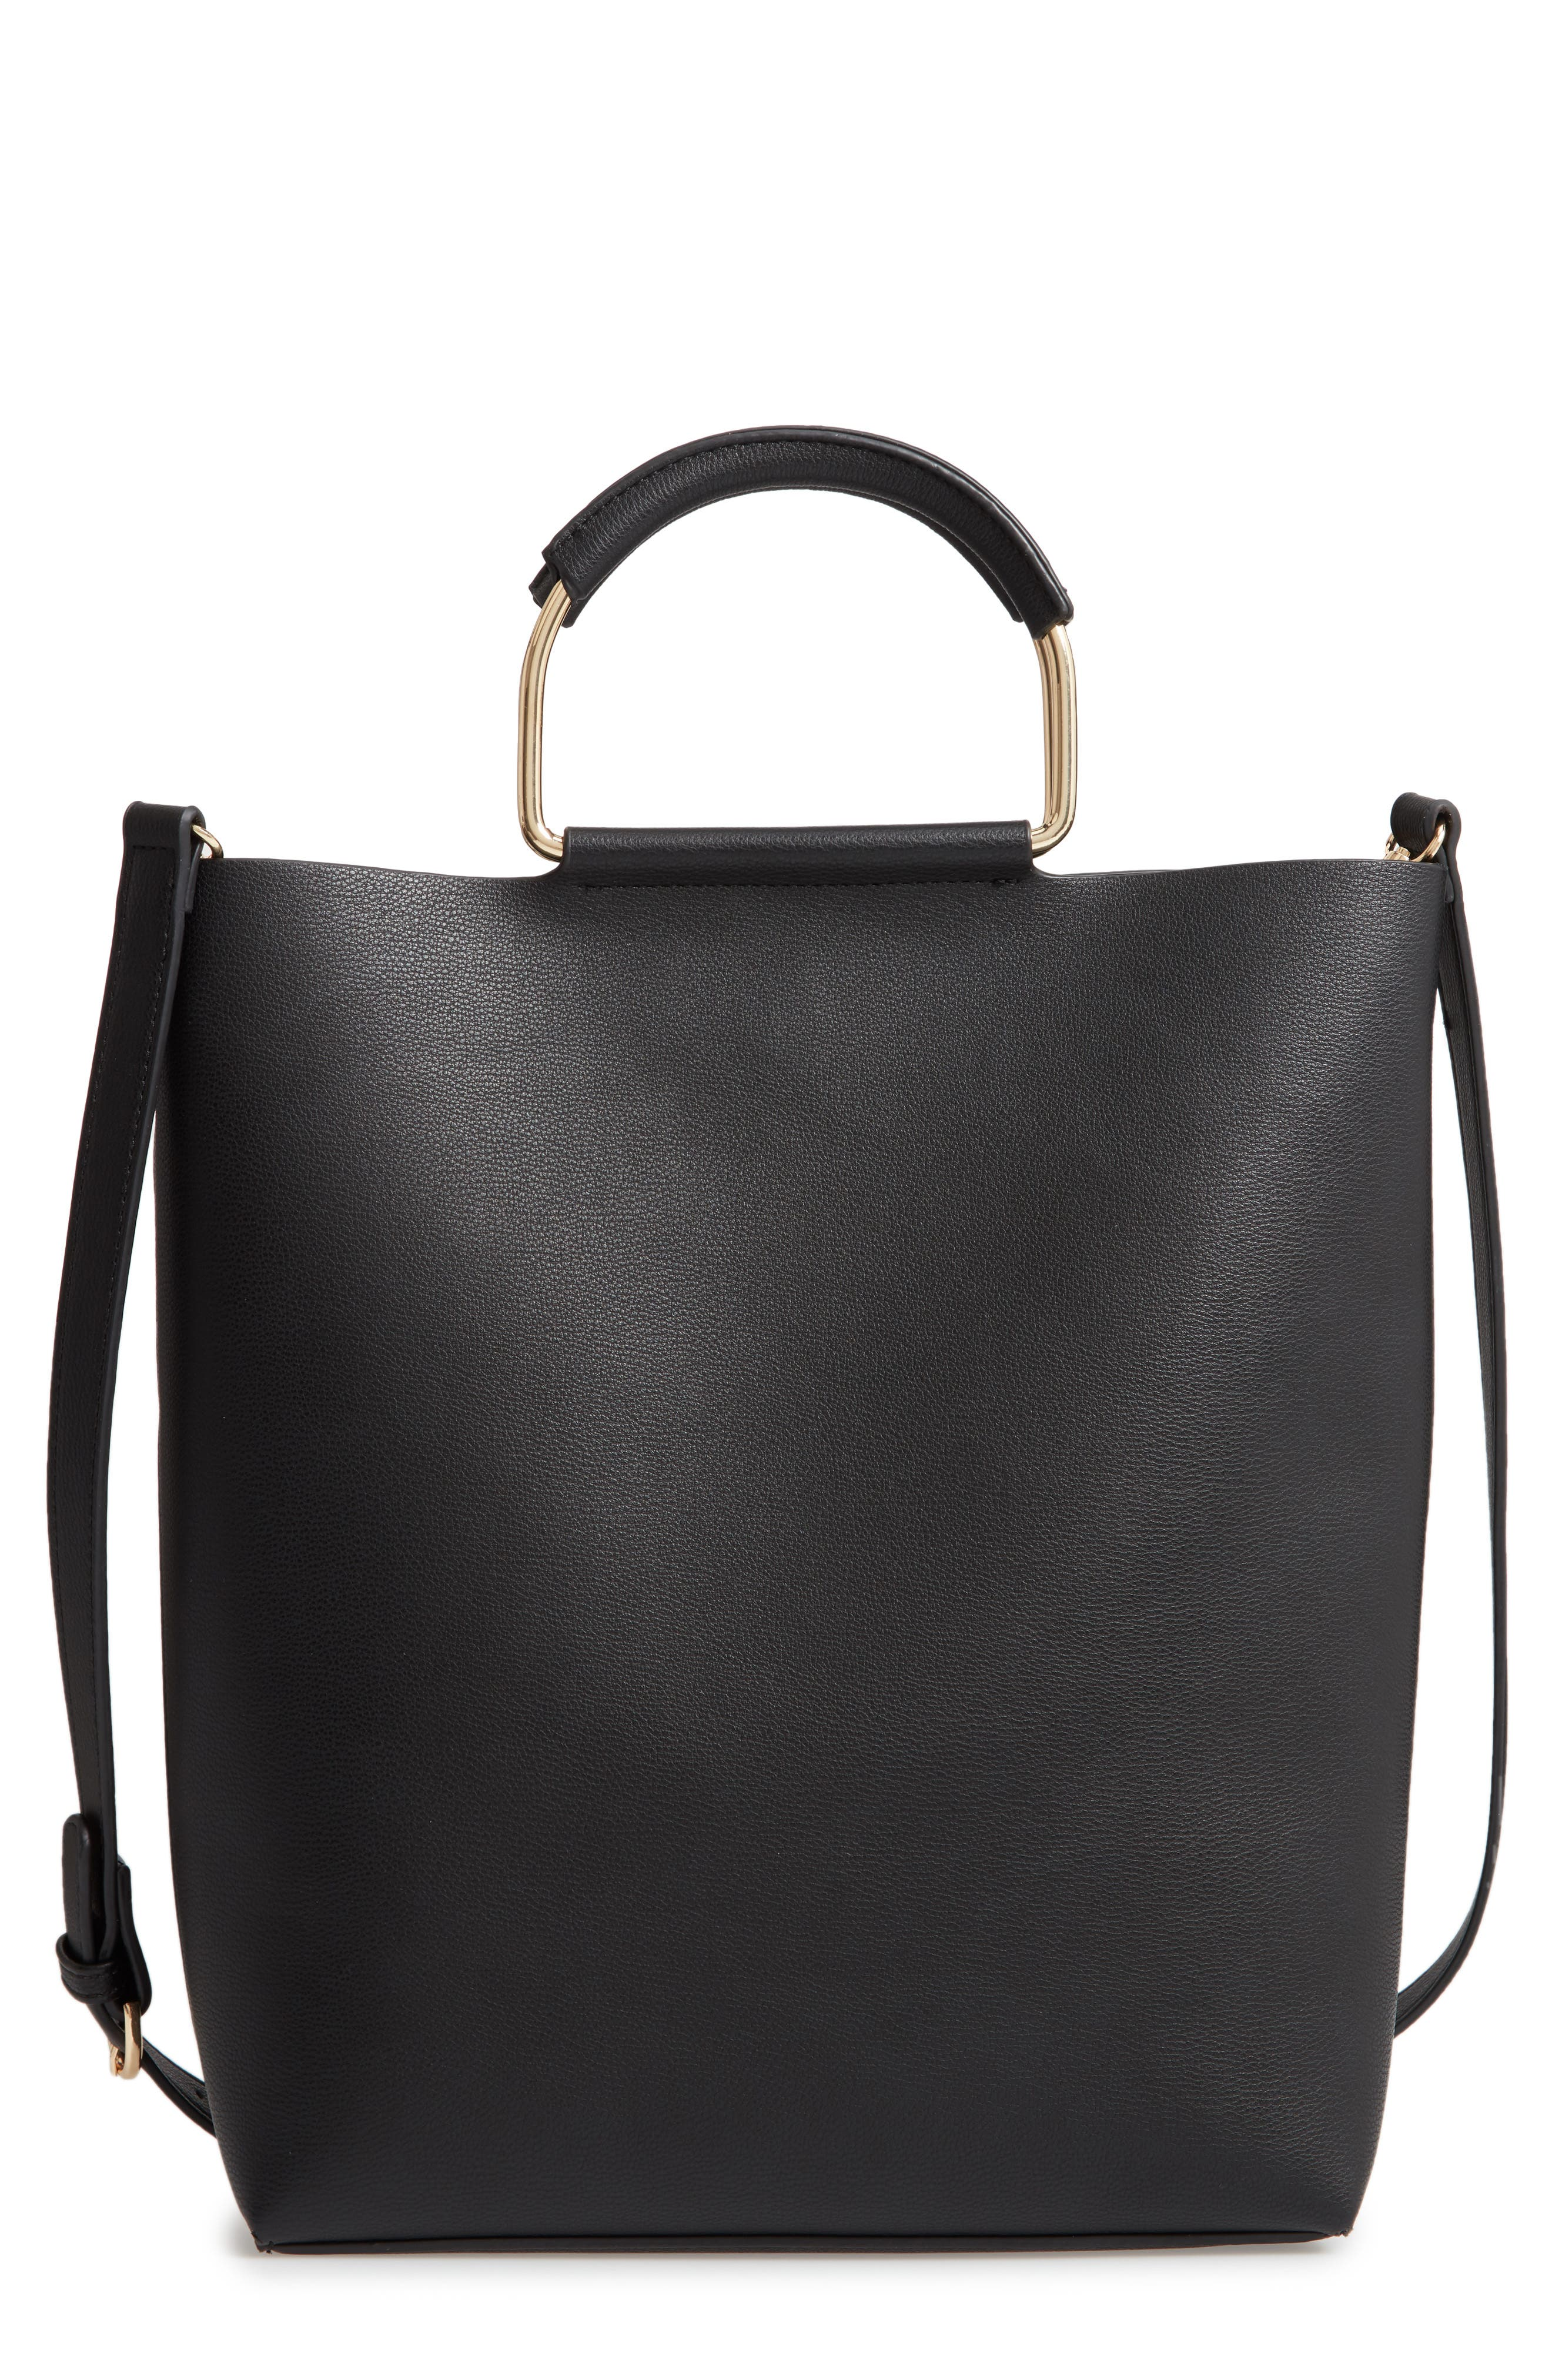 CHELSEA28 Payton Convertible Faux Leather Tote, Main, color, BLACK